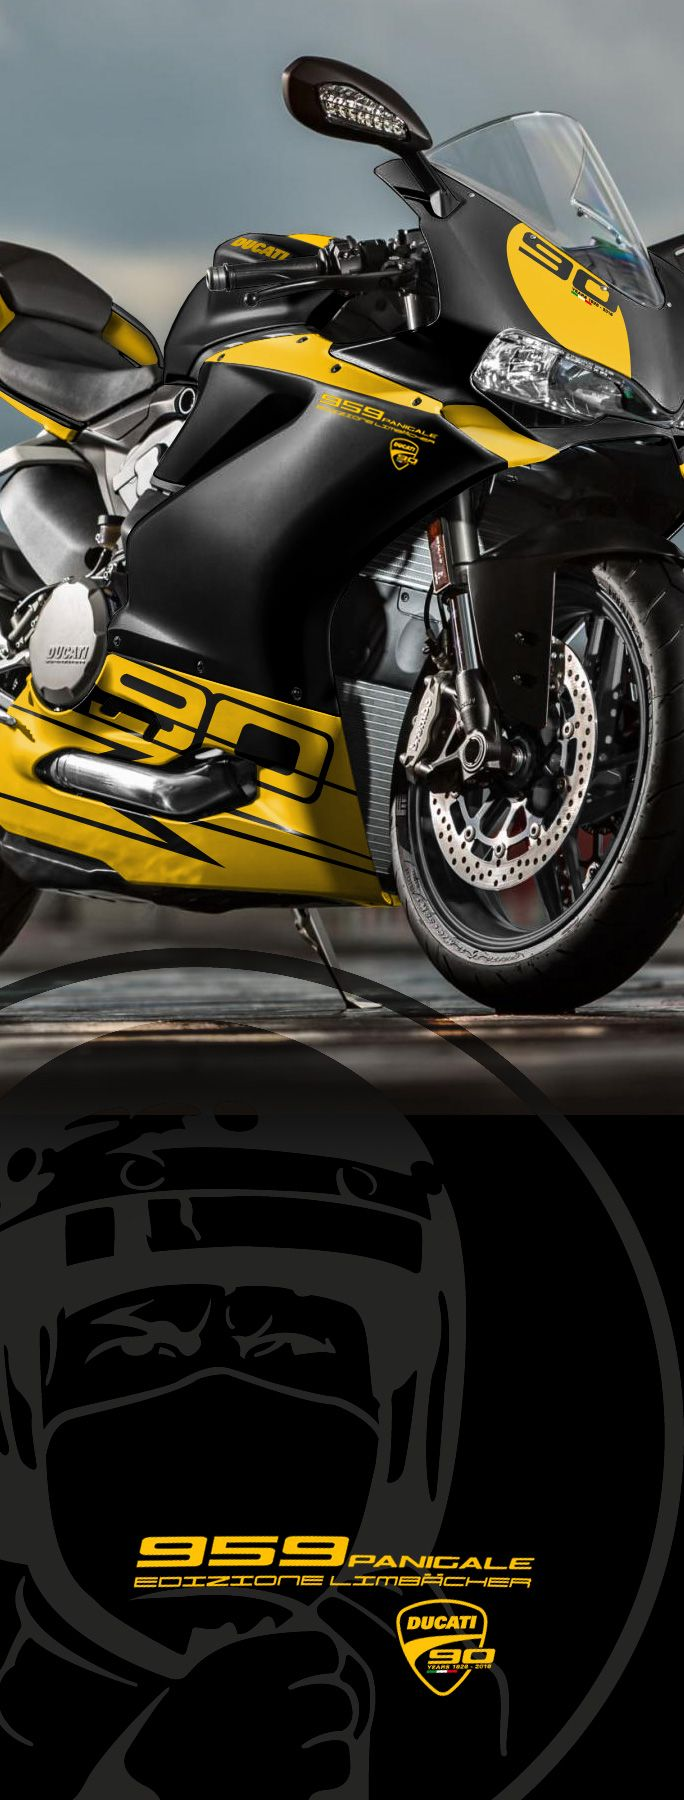 25 best motorcycle designs images on pinterest | motorcycle